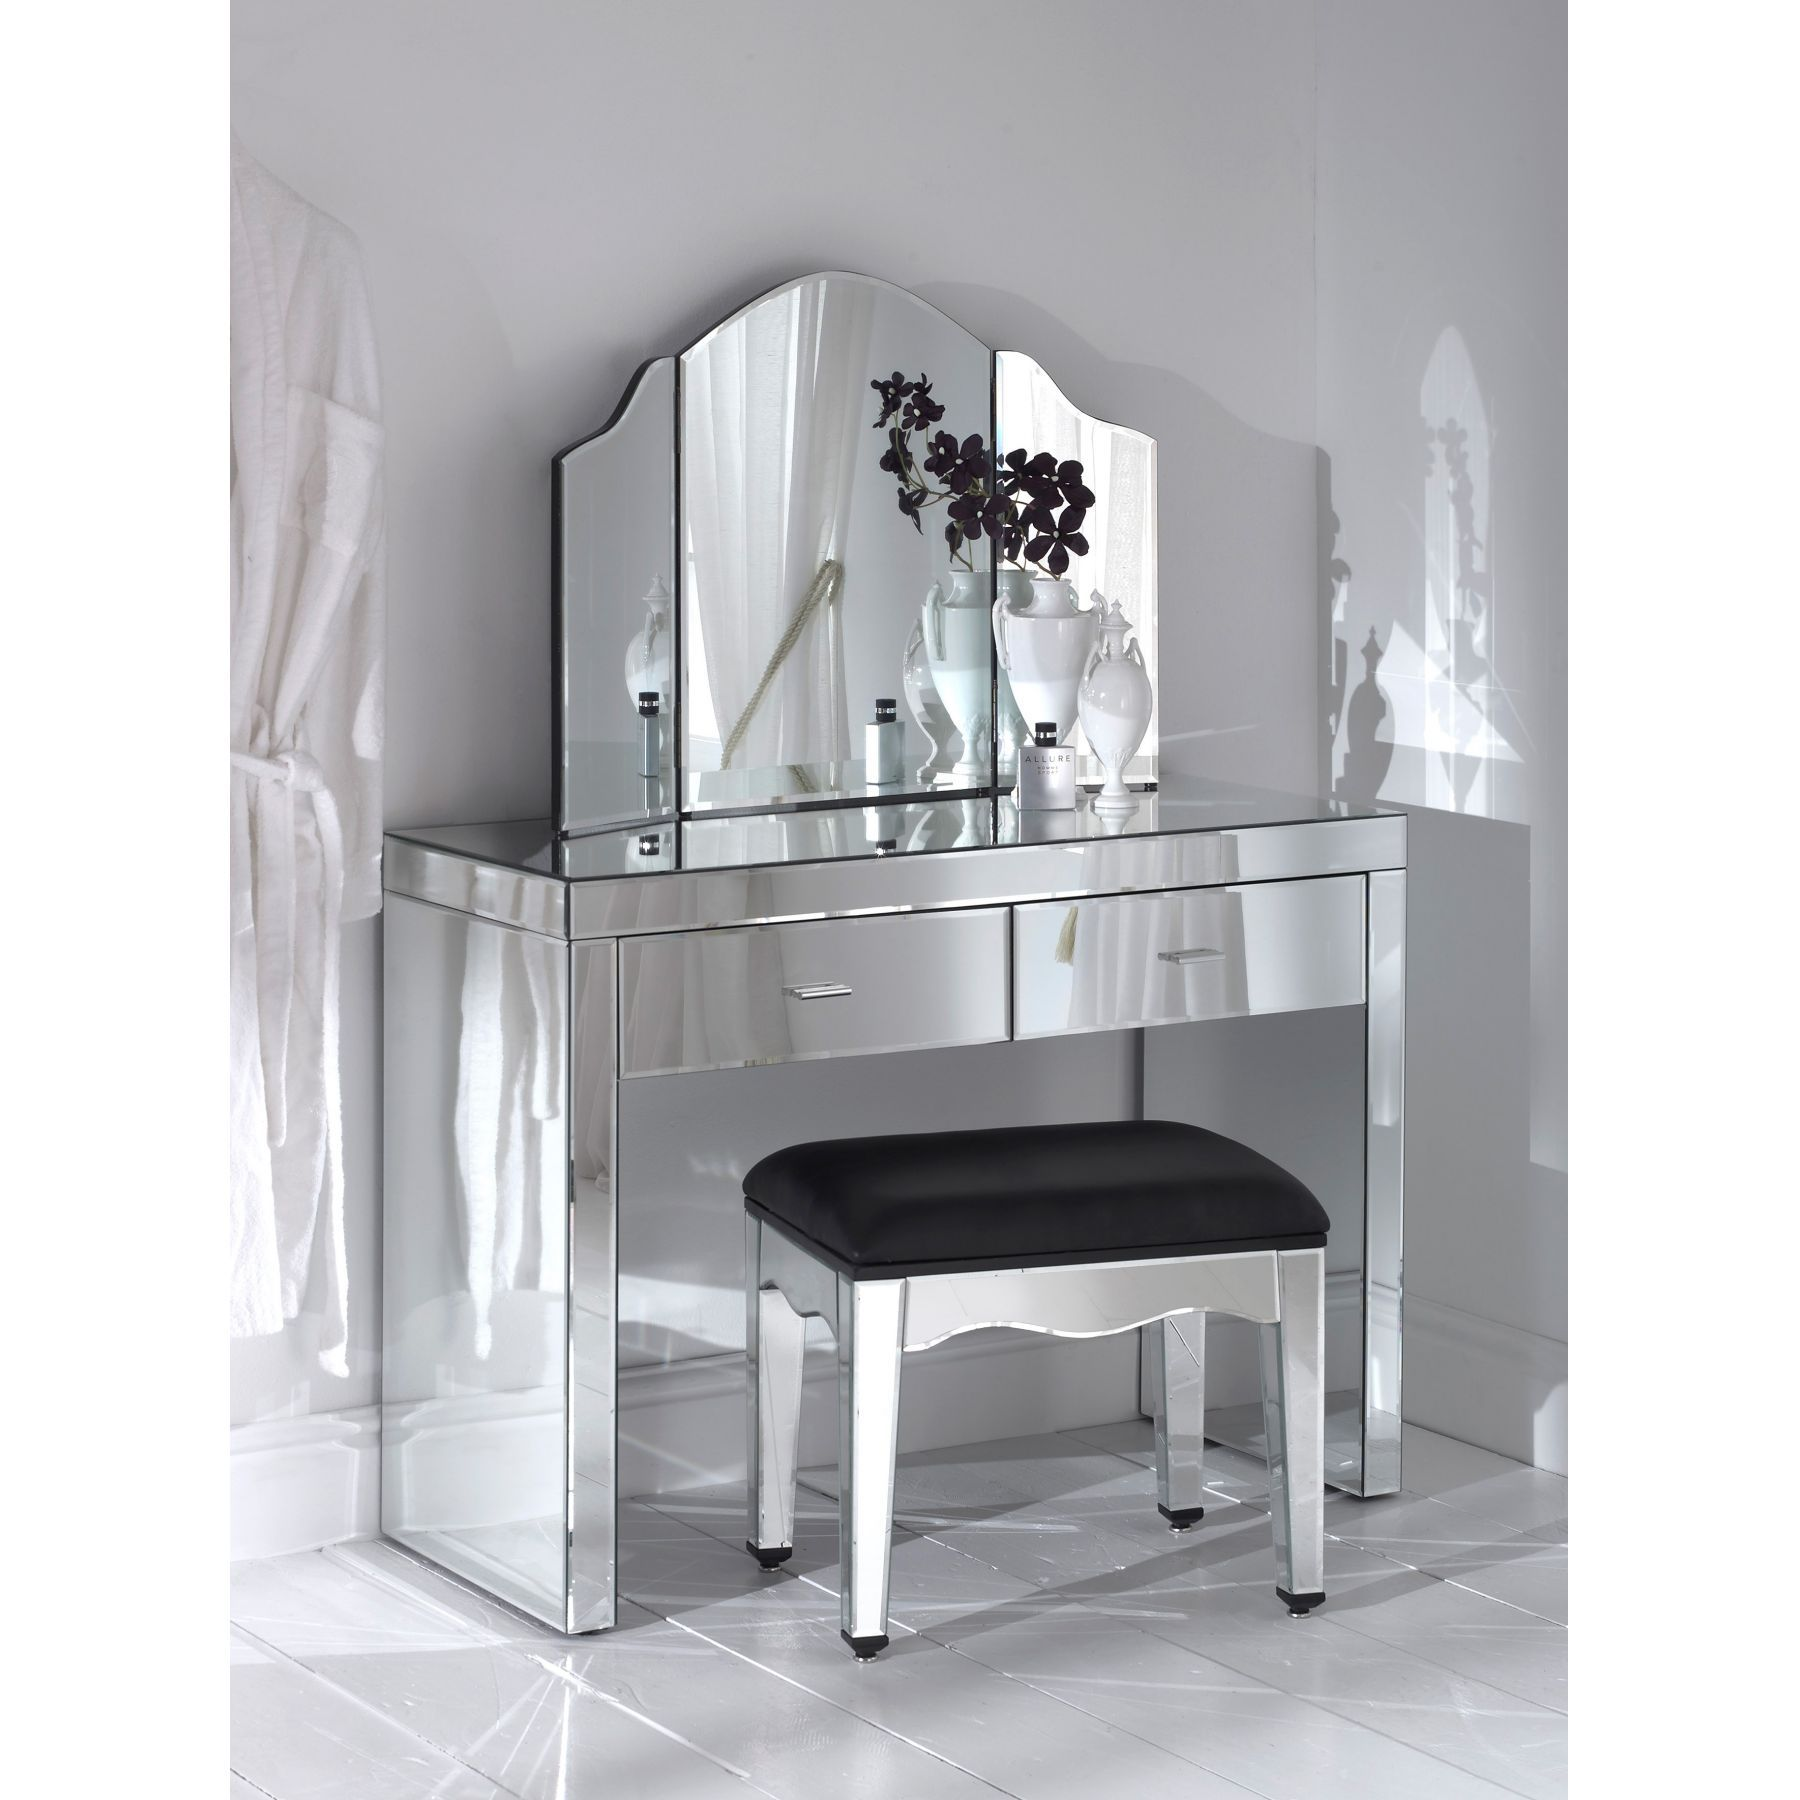 Superb Love This Mirrored Vanity!